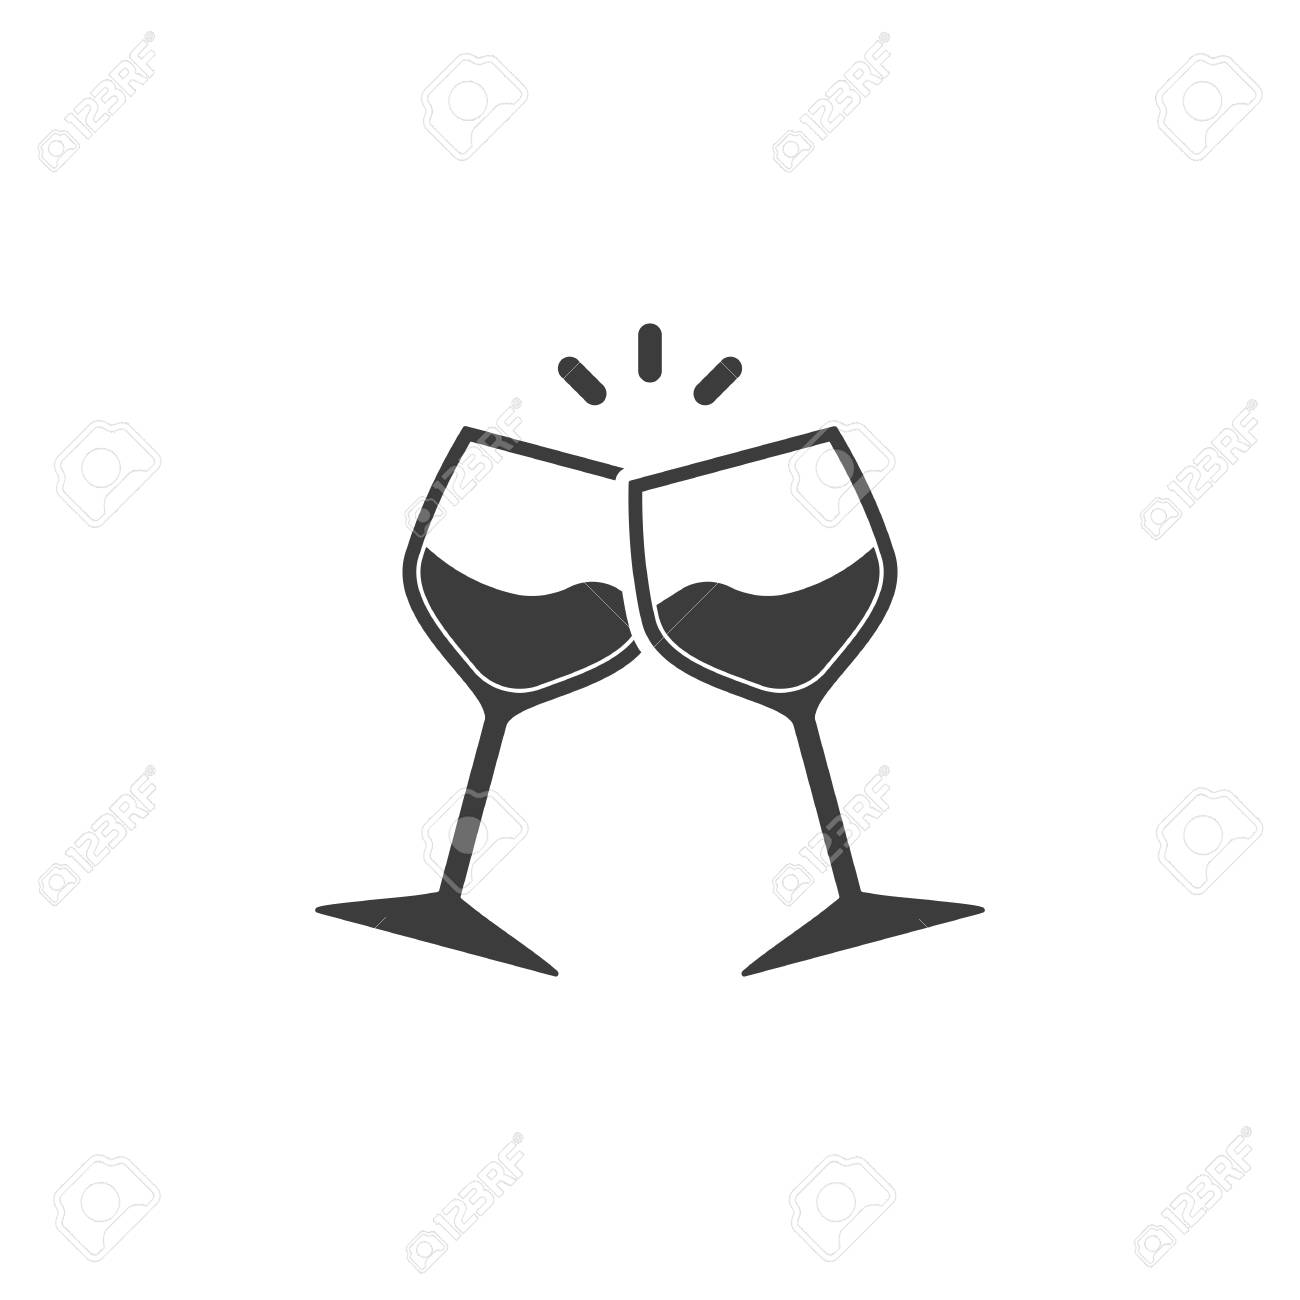 Champagne glasses icon. Glasses with wine in flat style. Vector illustration - 122946384